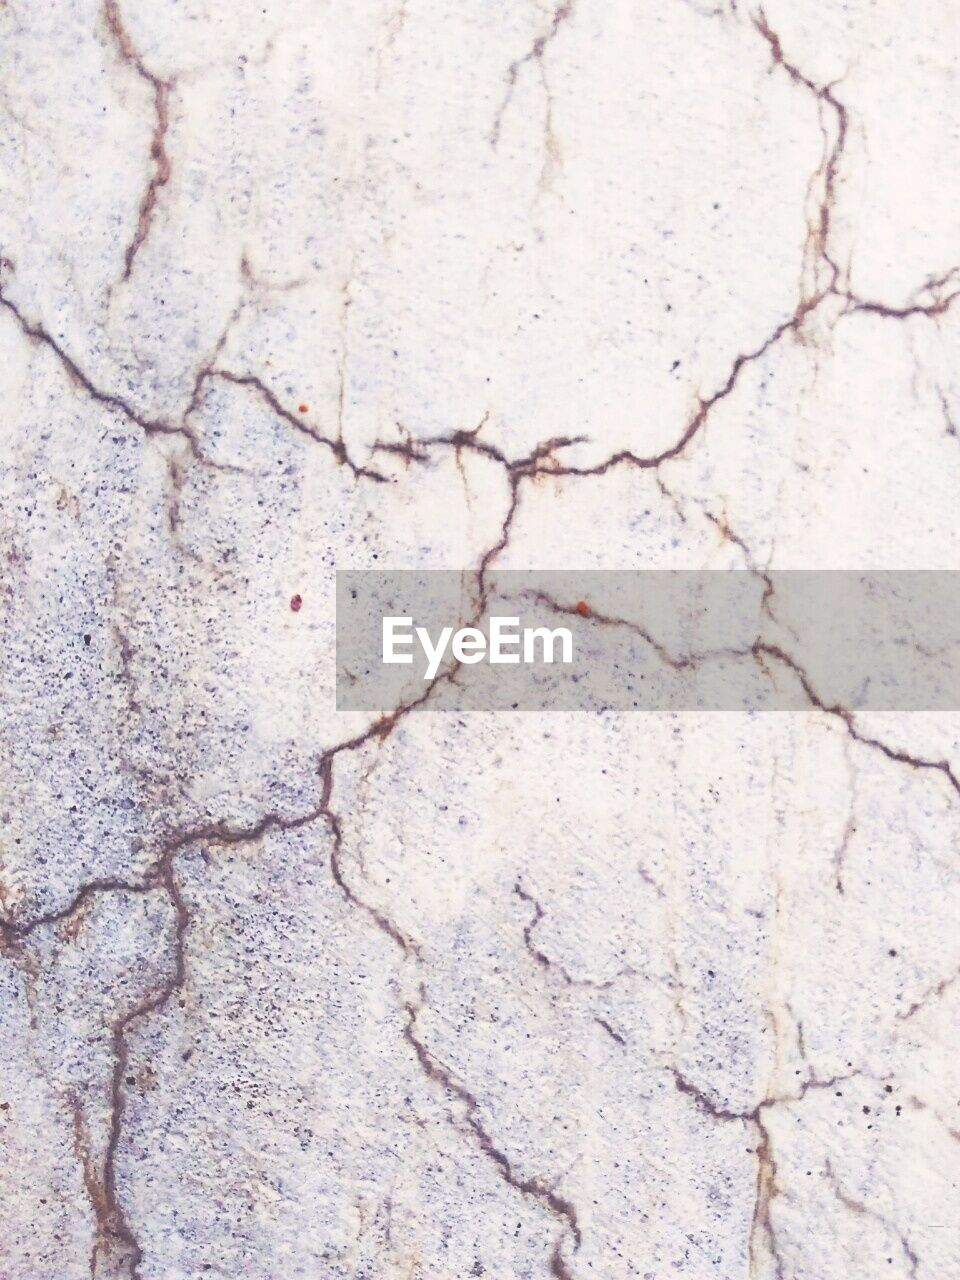 cracked, backgrounds, full frame, textured, drought, arid climate, land, marble, pattern, no people, close-up, environmental issues, nature, day, outdoors